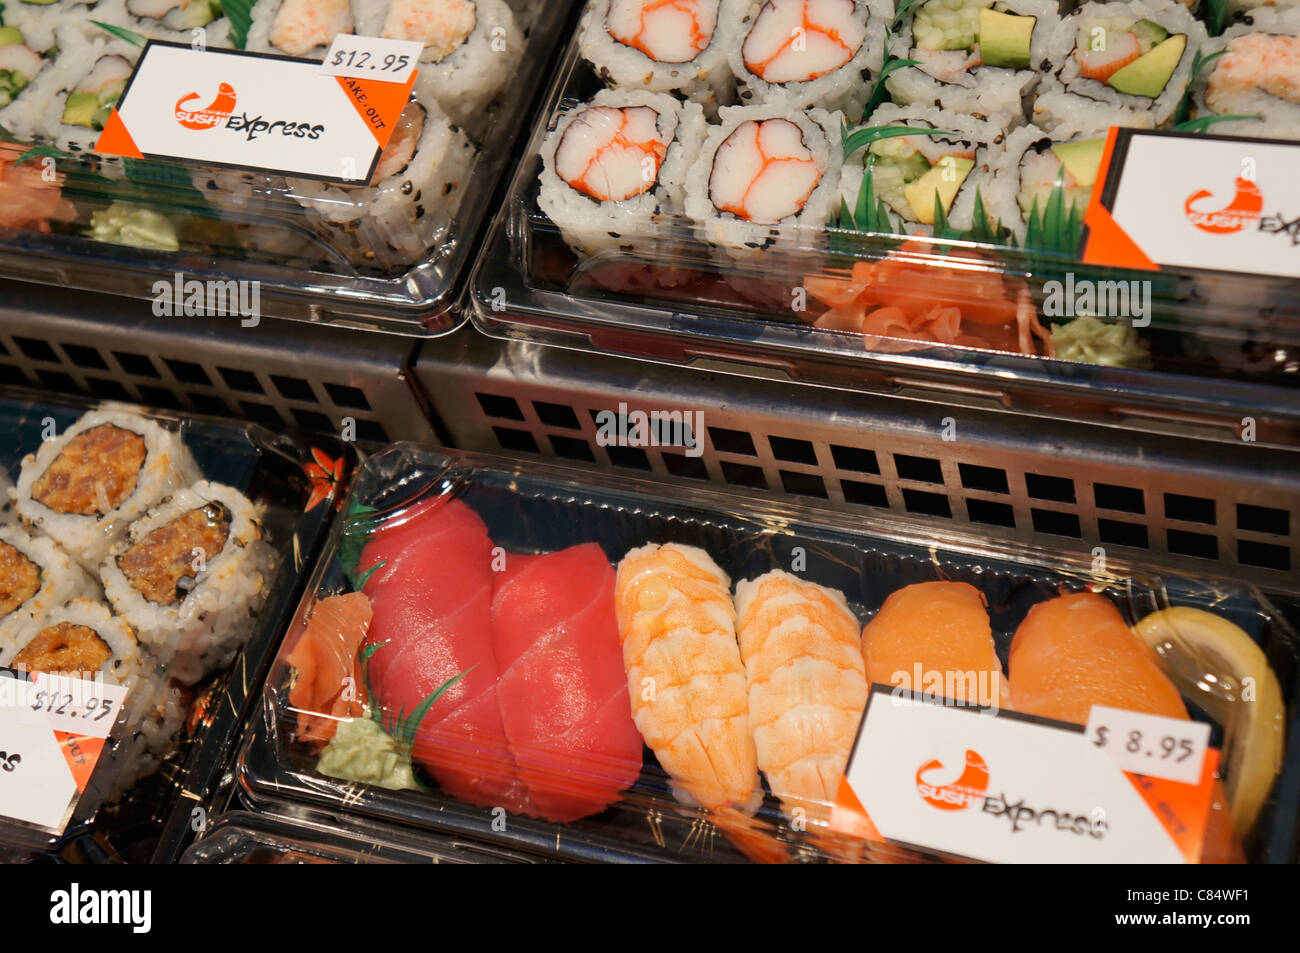 Sushi packaged in plastic containers, in fridge/freezer section - Stock Image